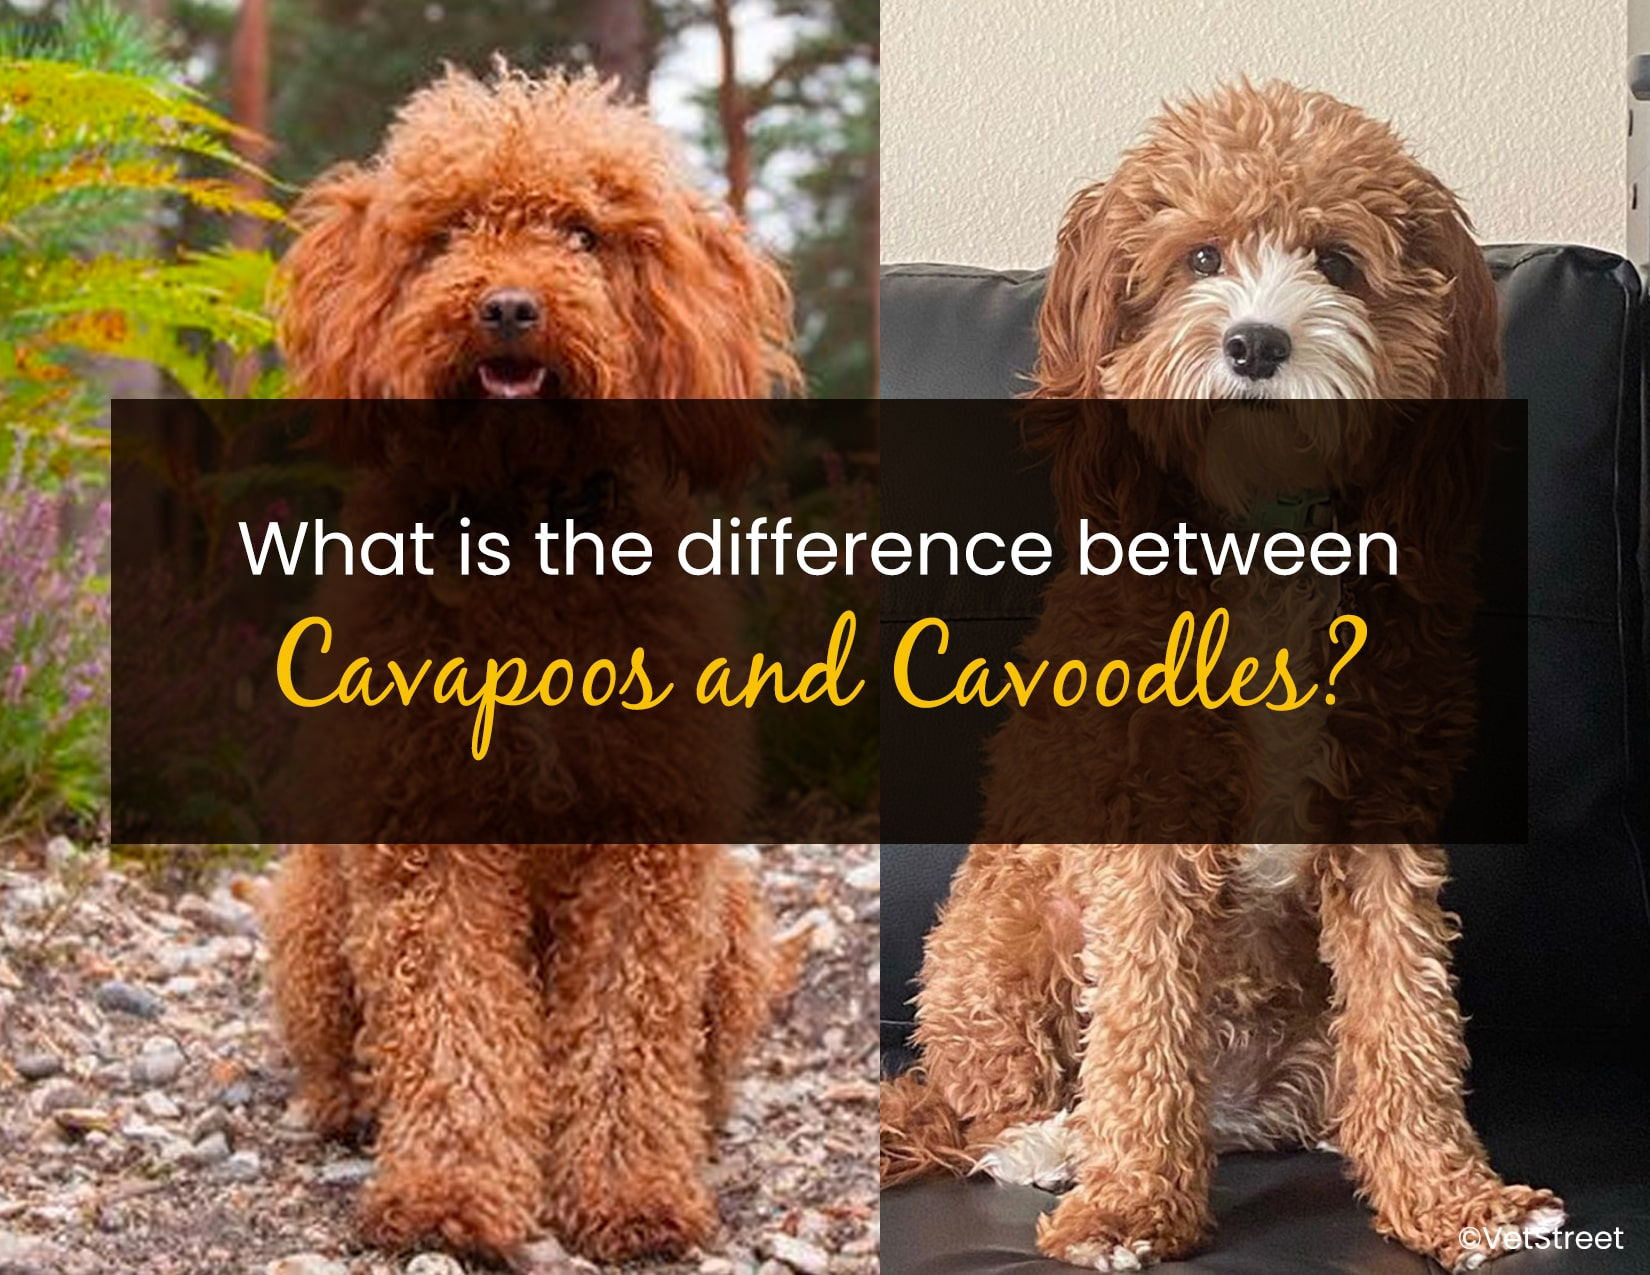 Cavapoos and Cavoodles